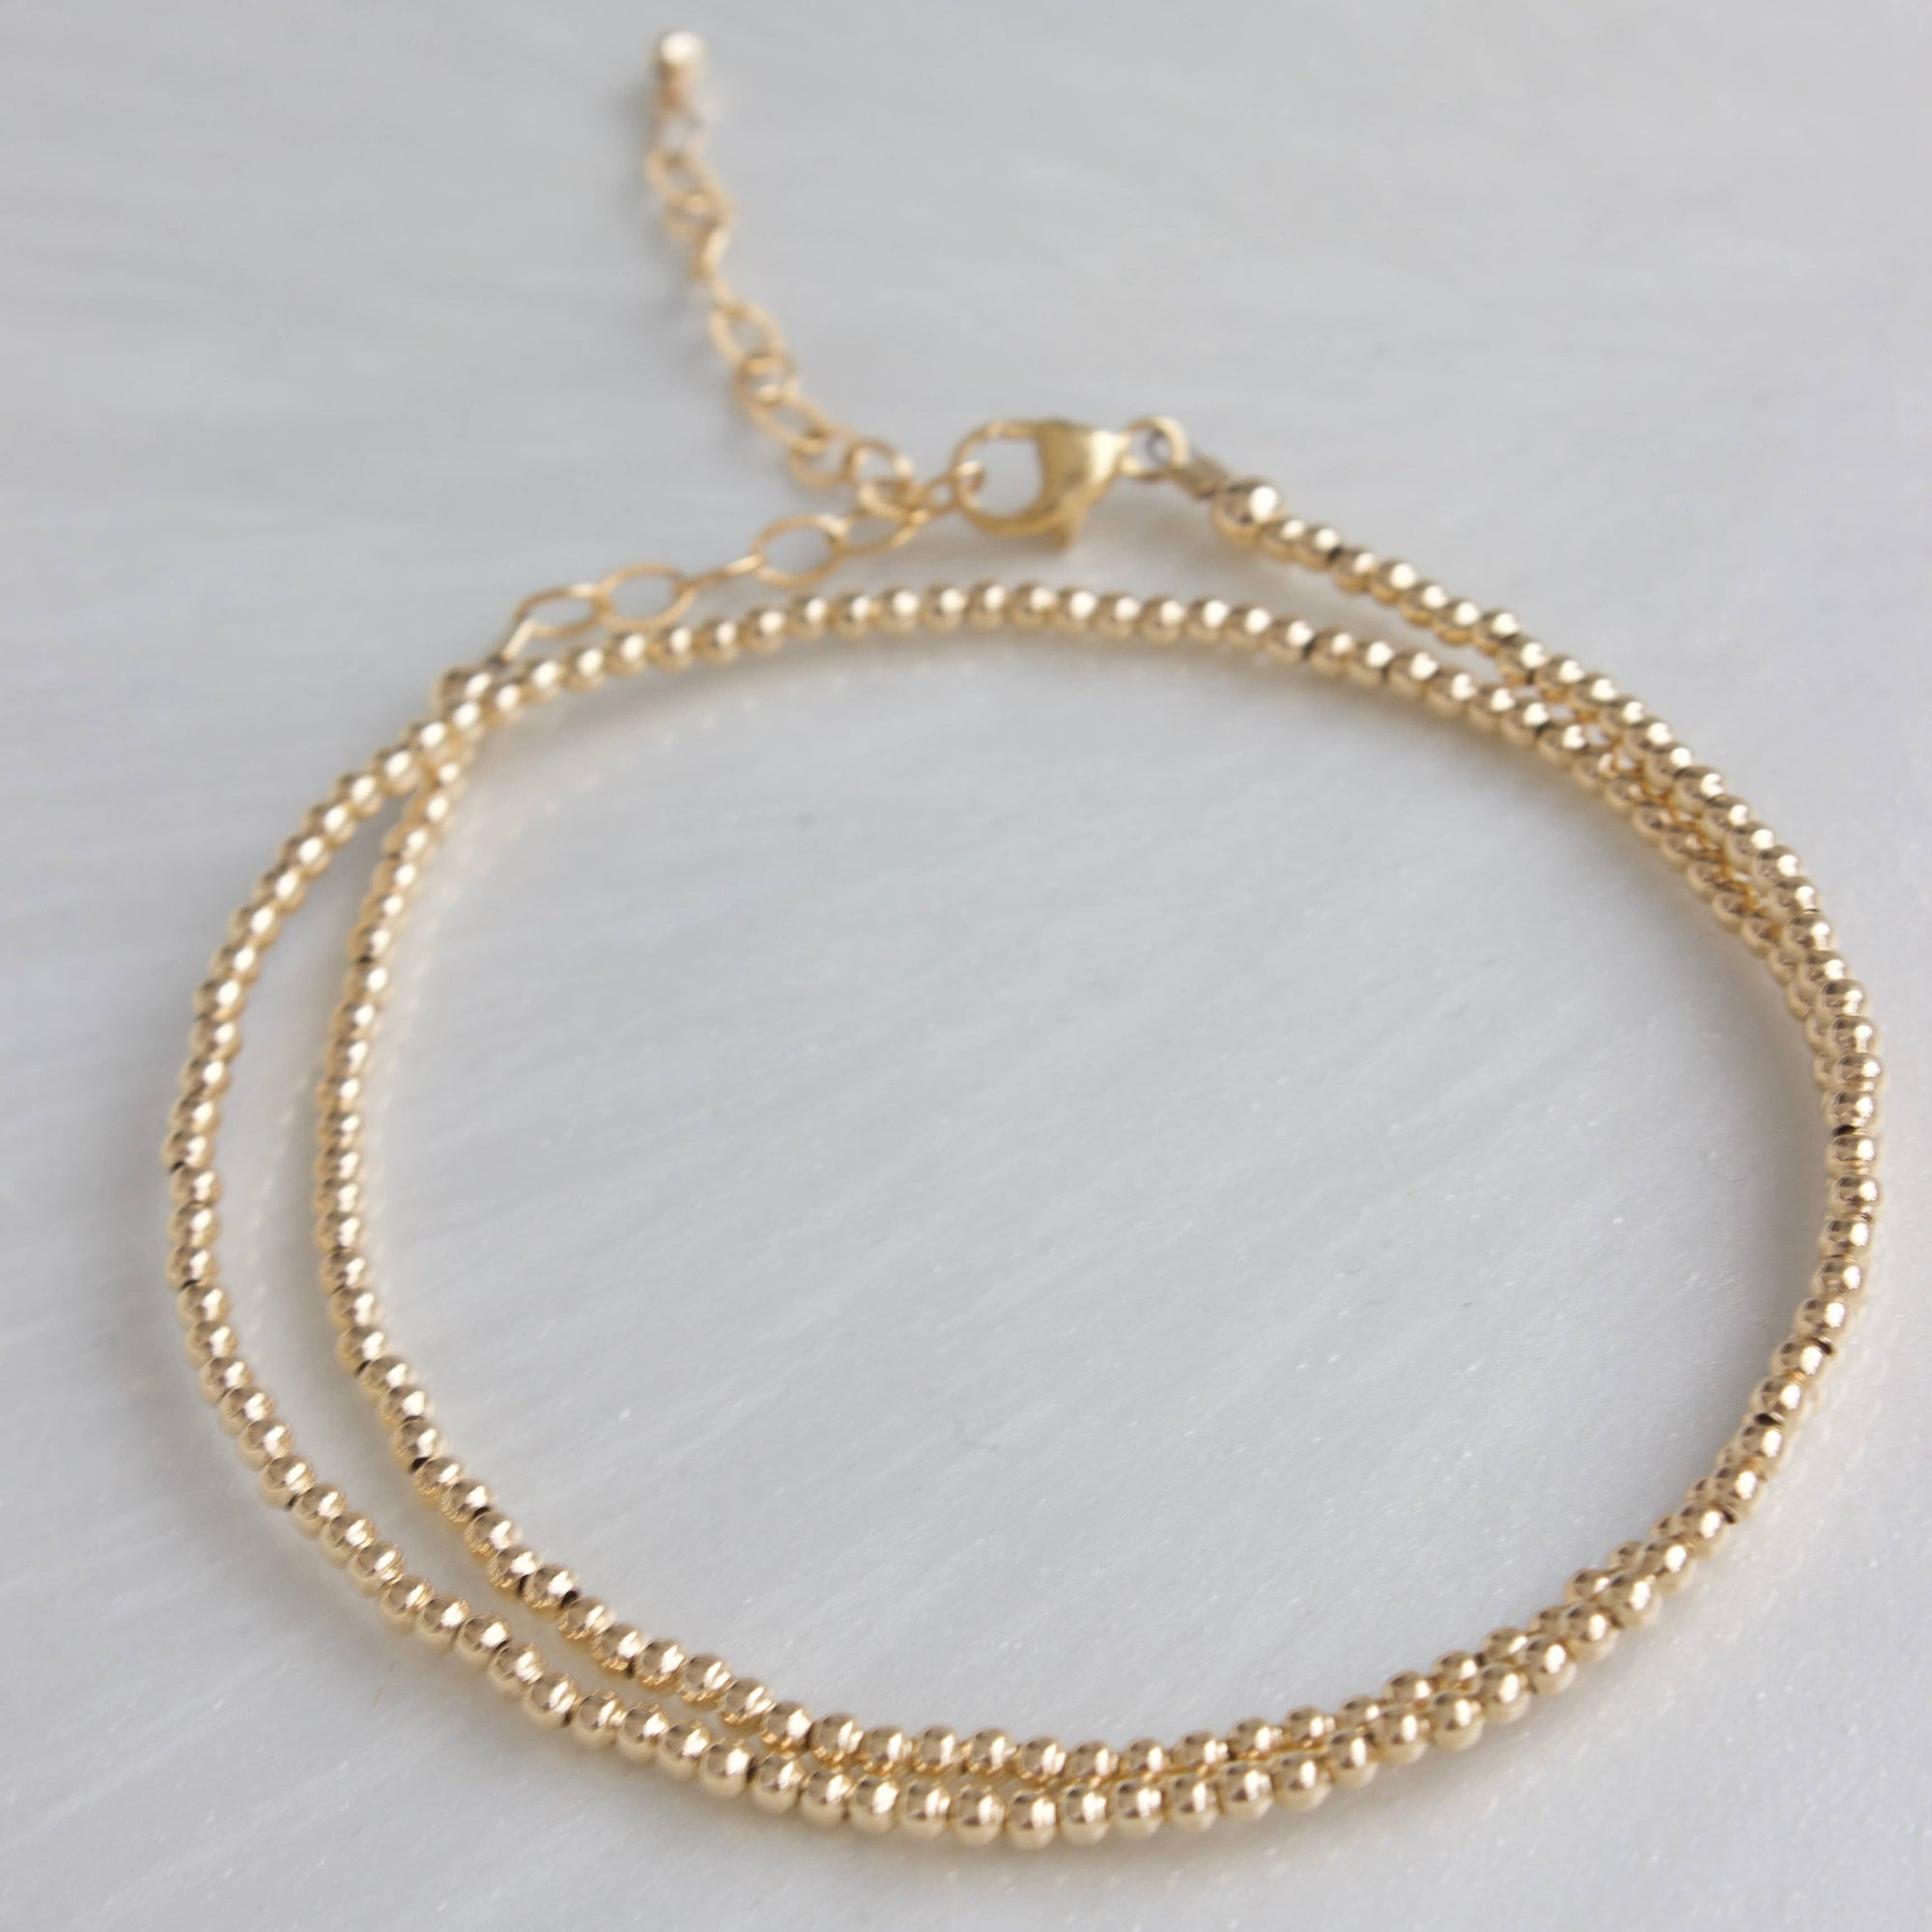 Katie Waltman Jewelry: 2mm Gold Filled Double Wrap Bead Bracelet